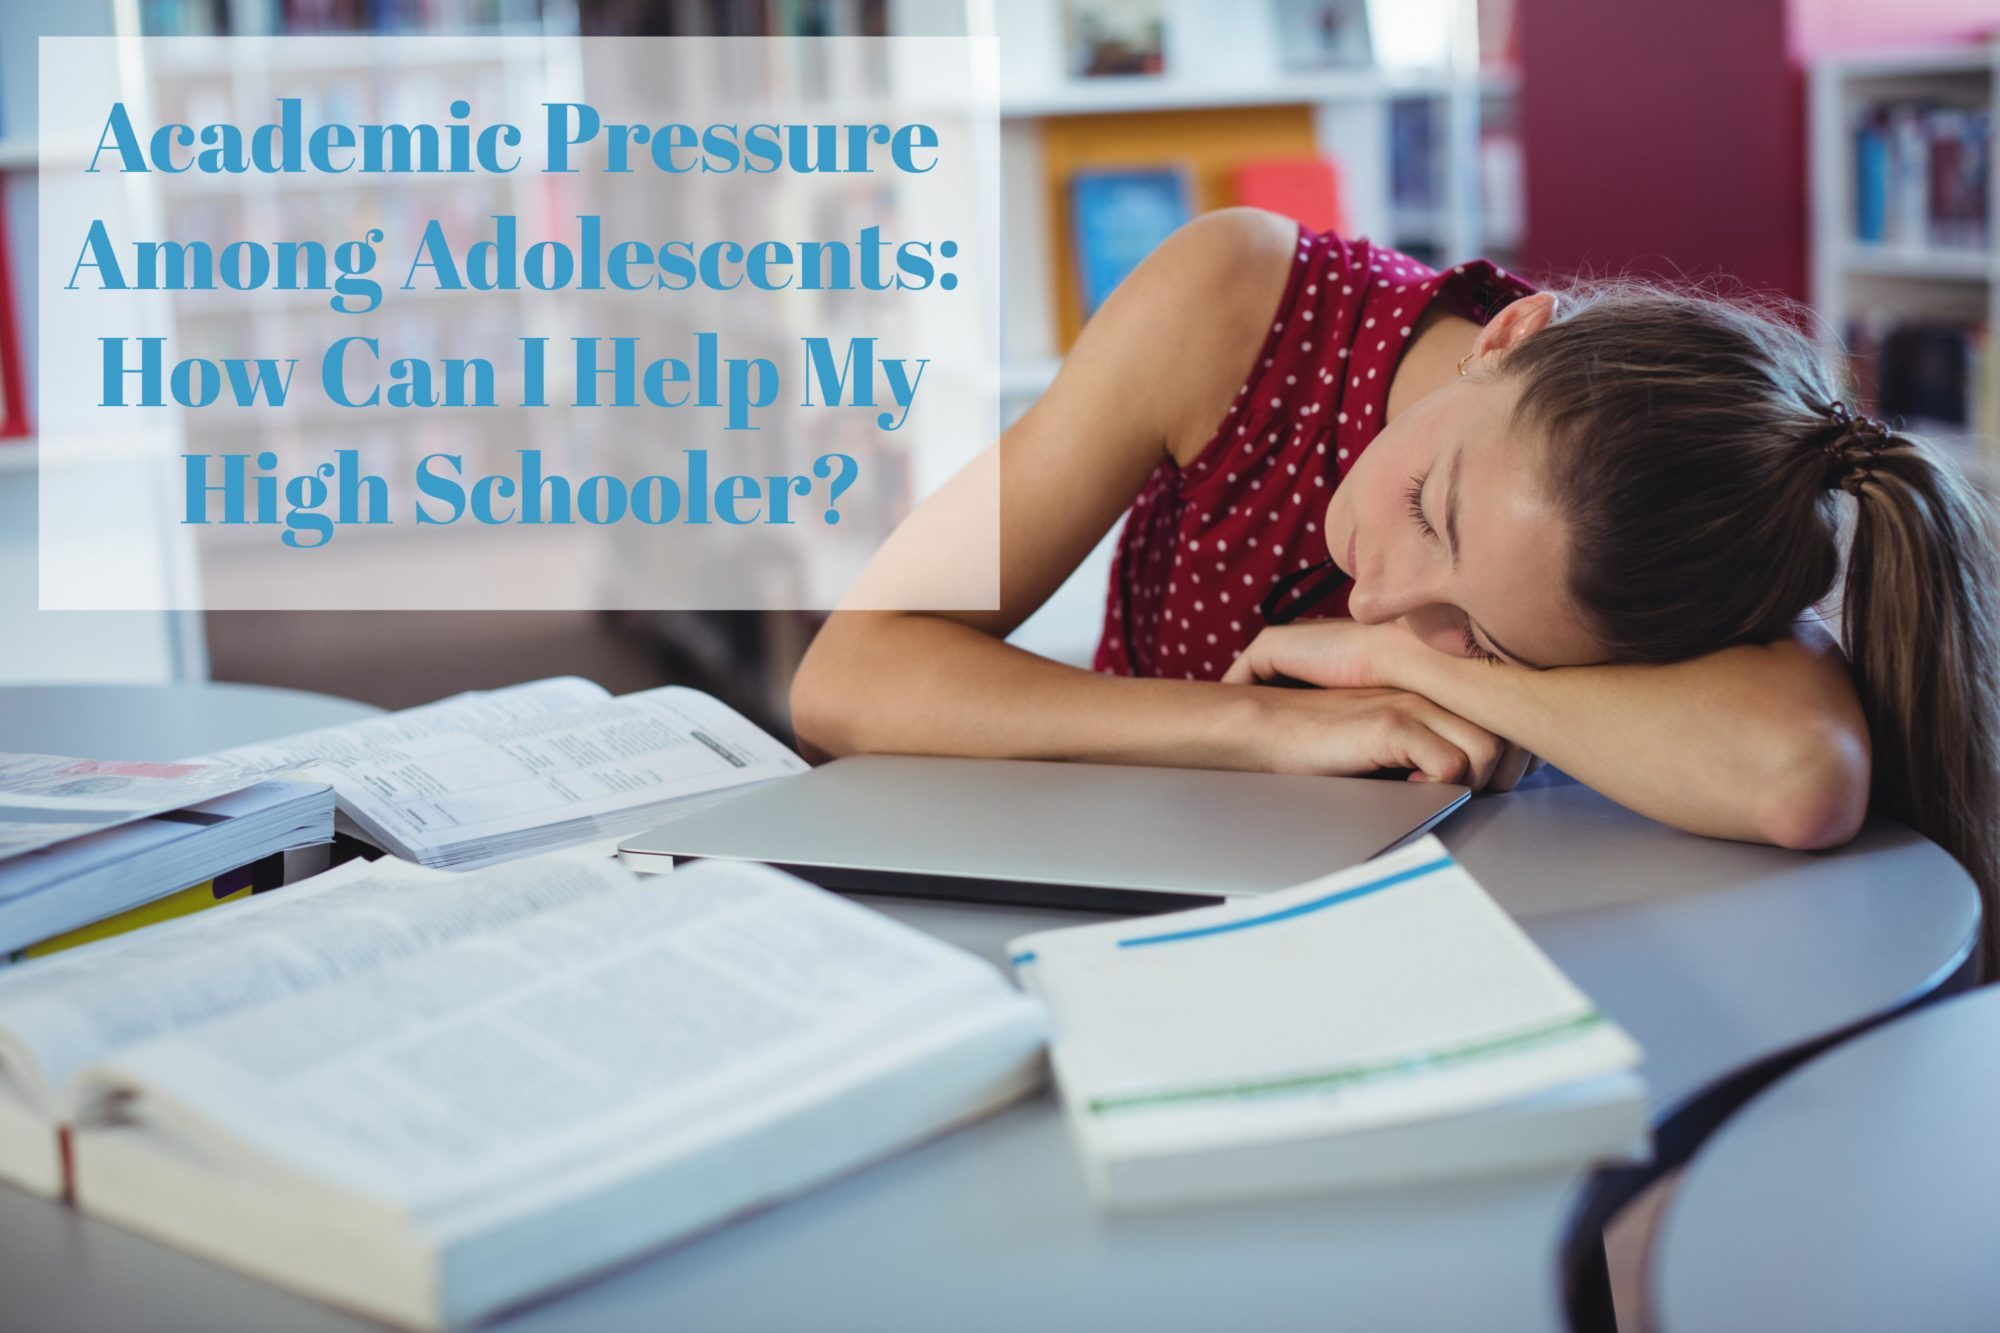 Academic pressure among adolescents. How can I help my high schooler?